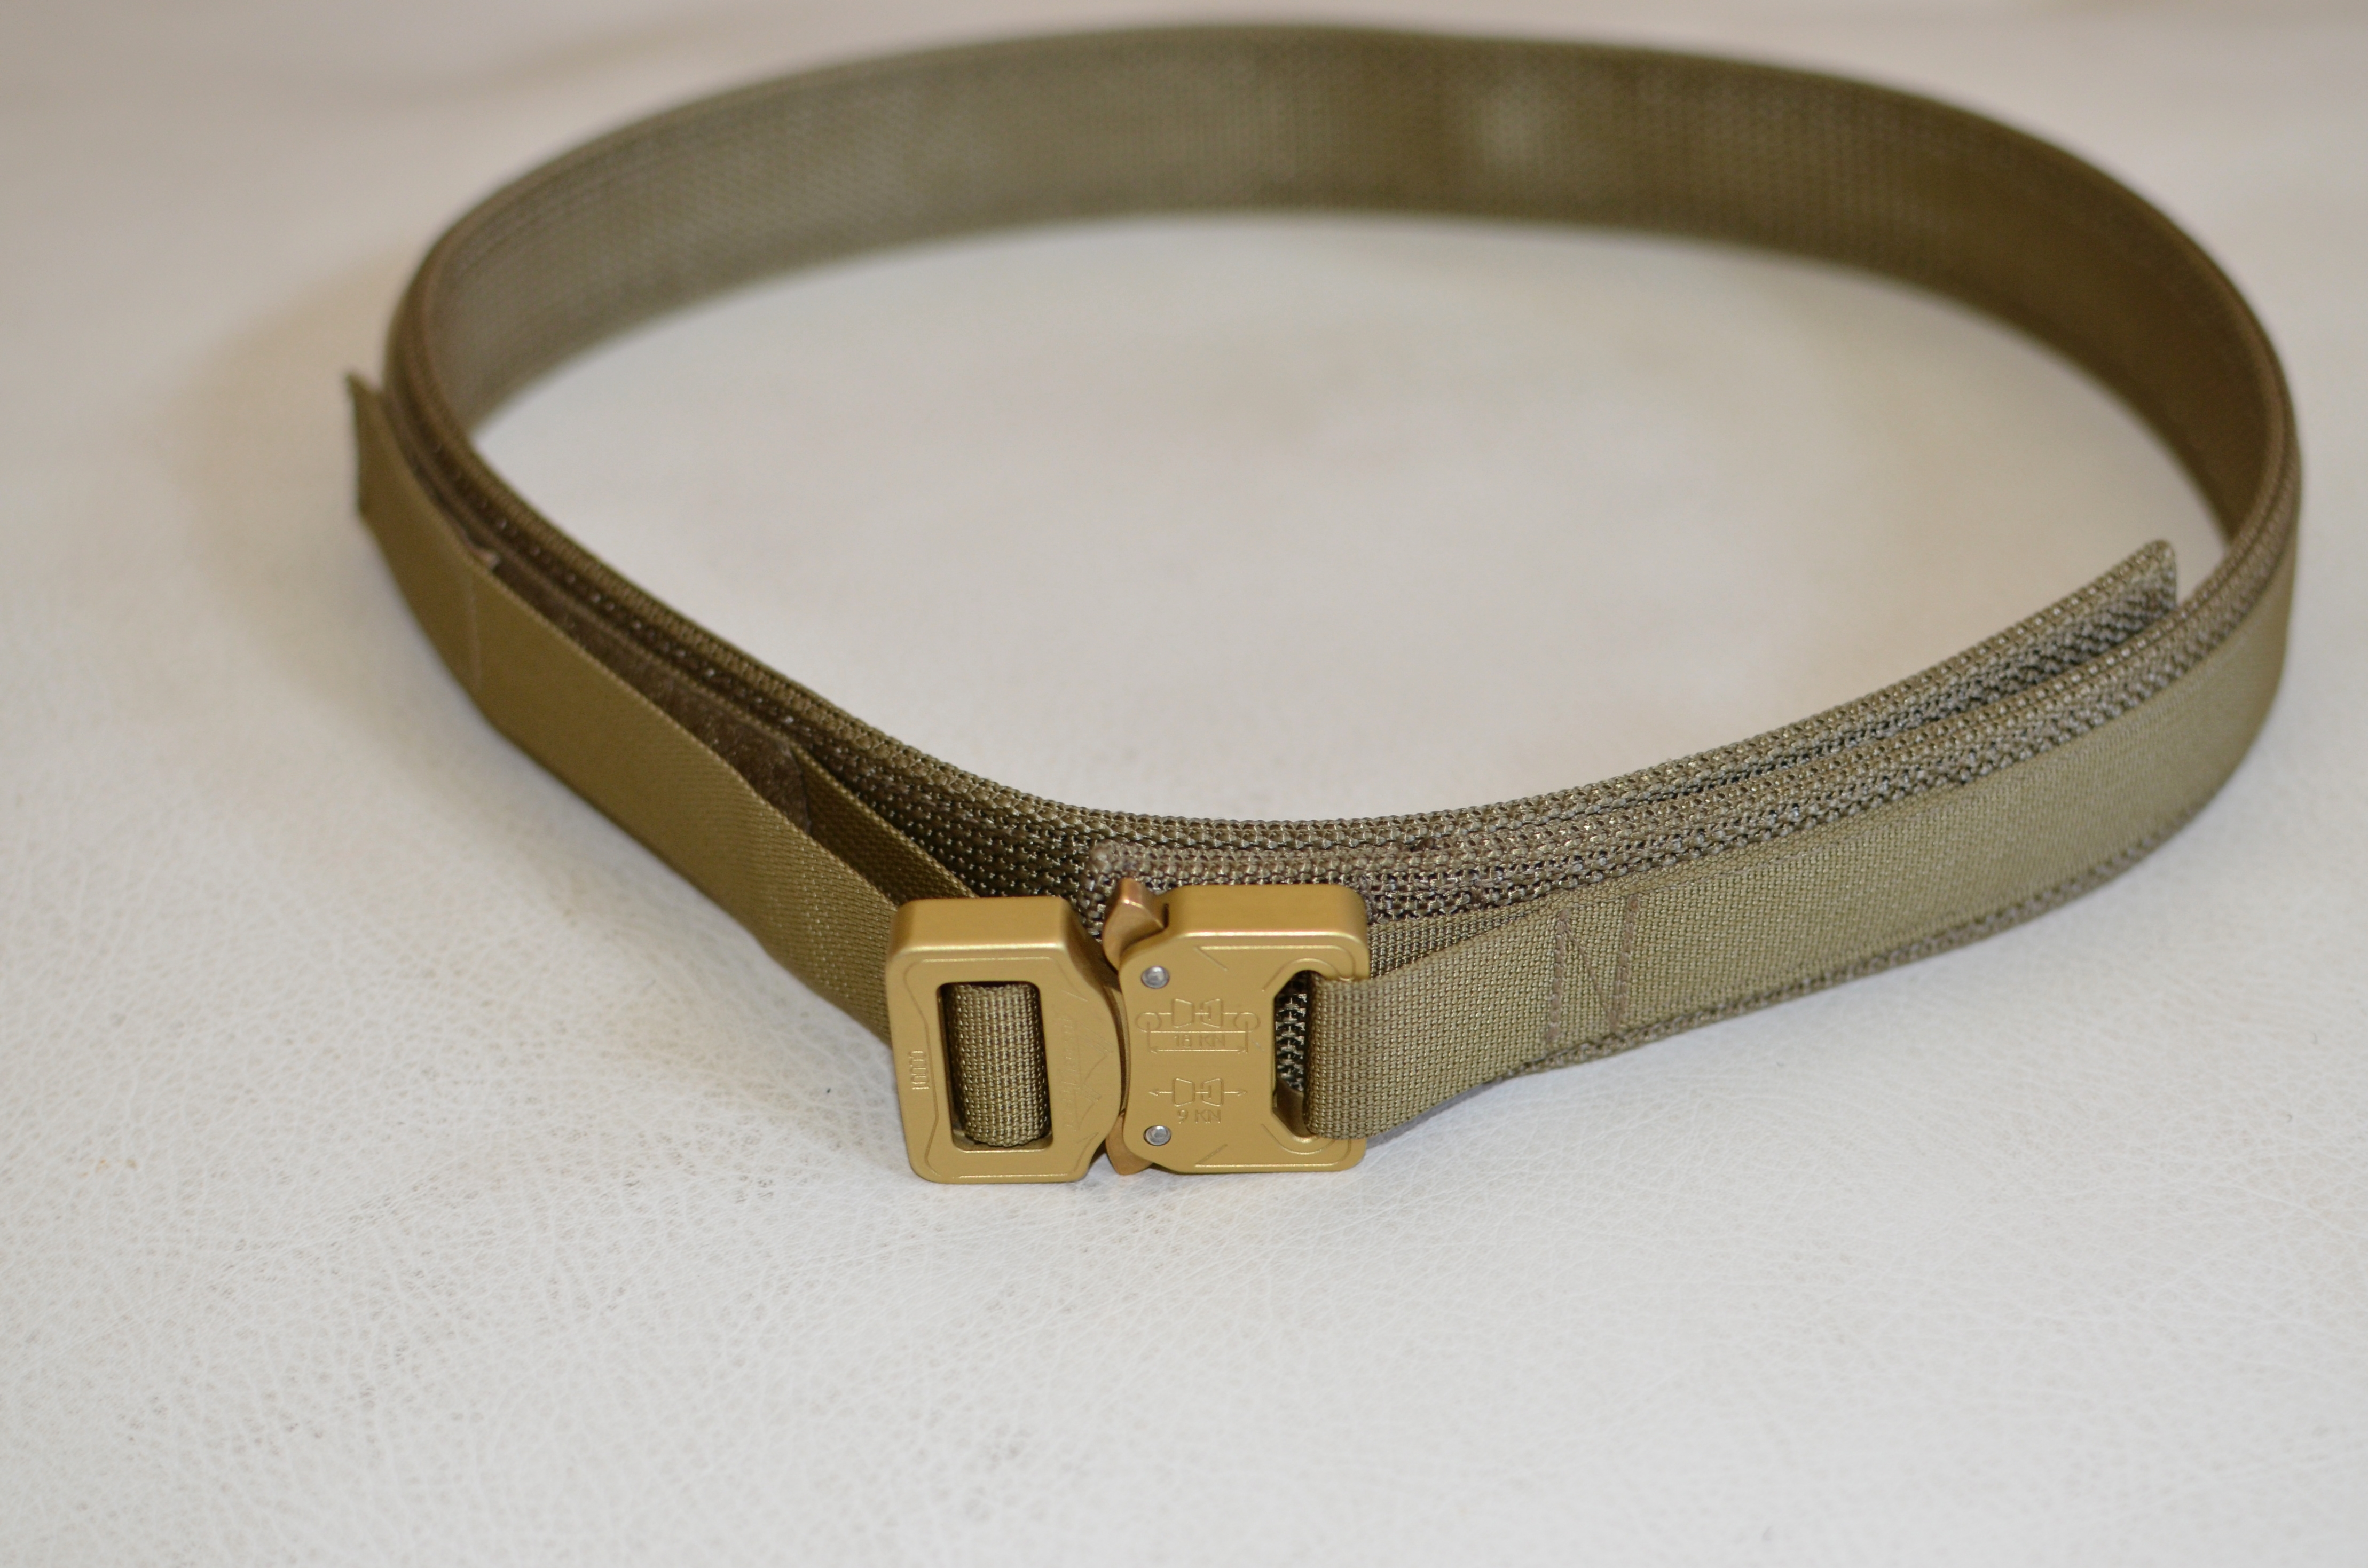 S.O.E. E.D.C. Every Day Carry Belt COYOTE With-Velcro Lining